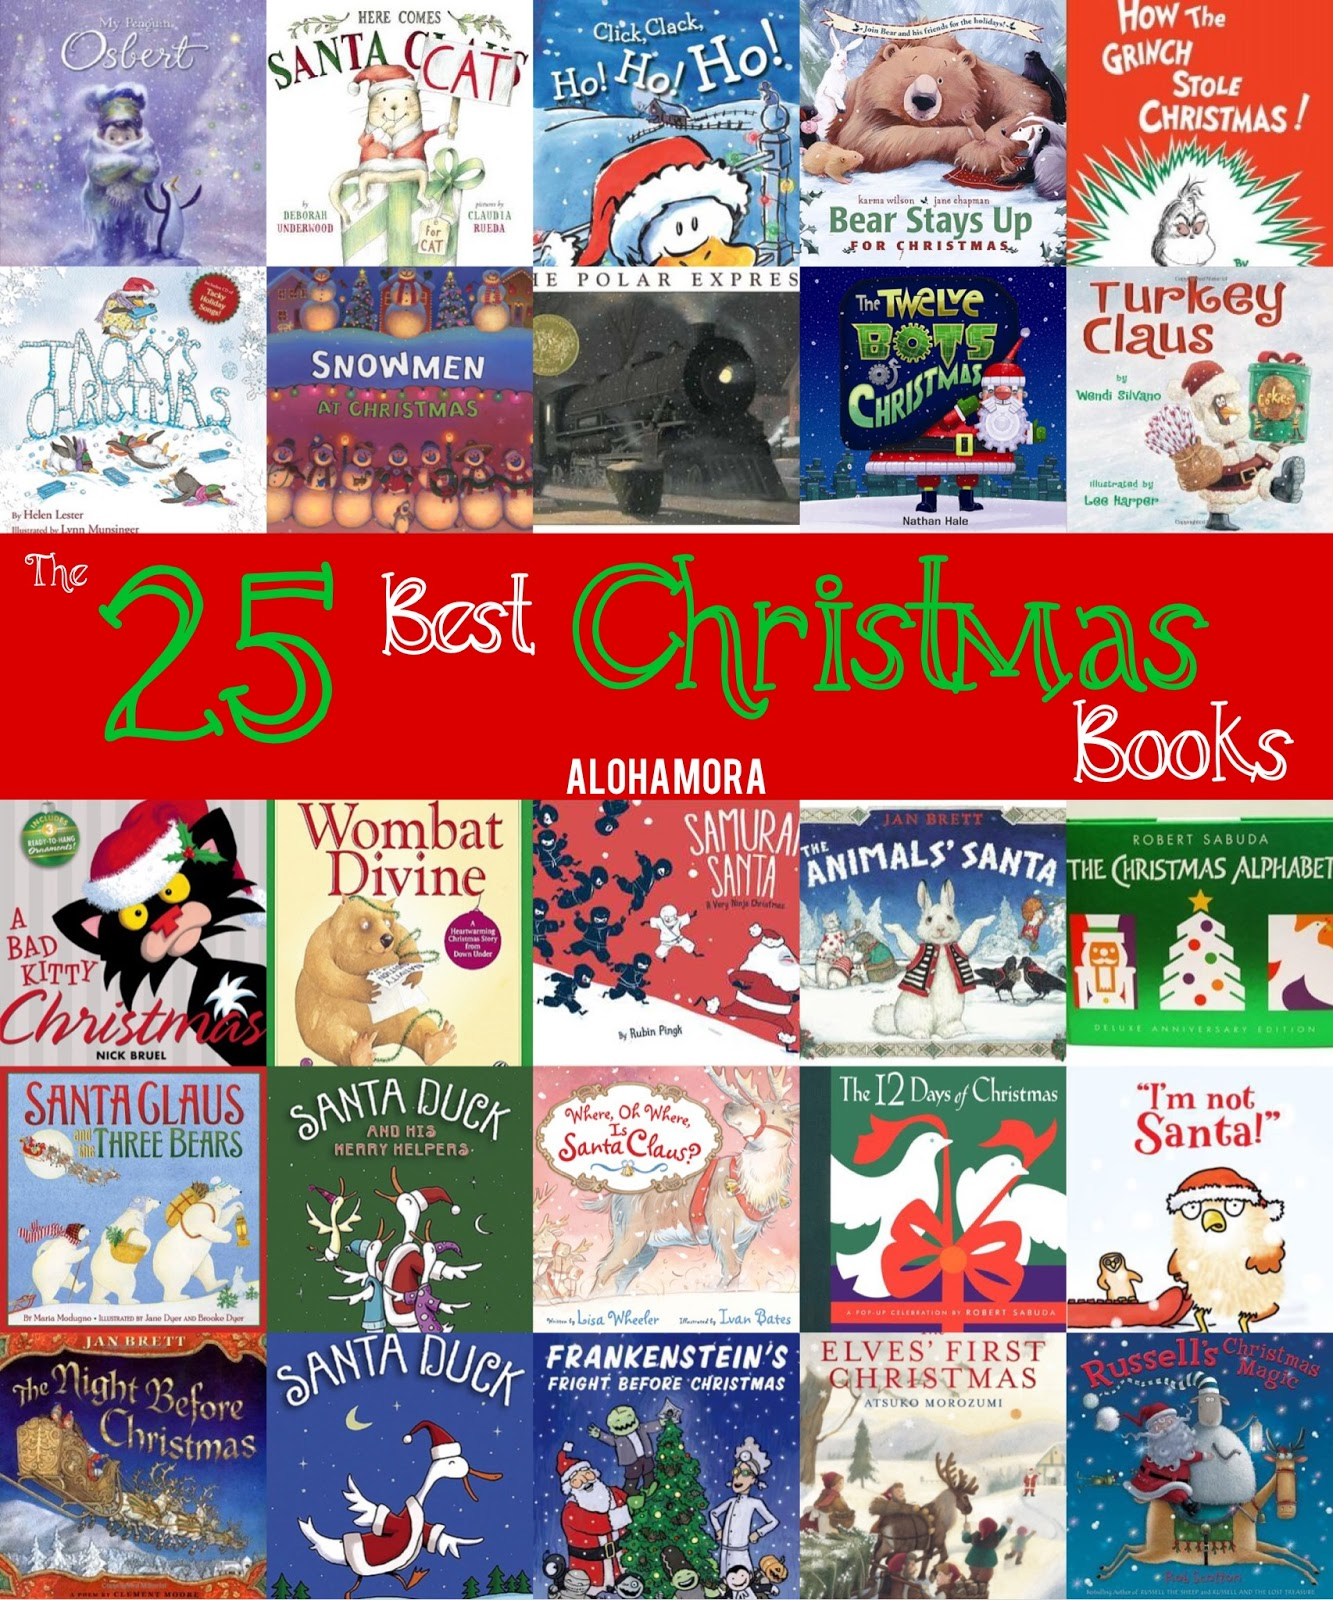 alohamora open a book the 25 best christmas picture books - Best Christmas Books